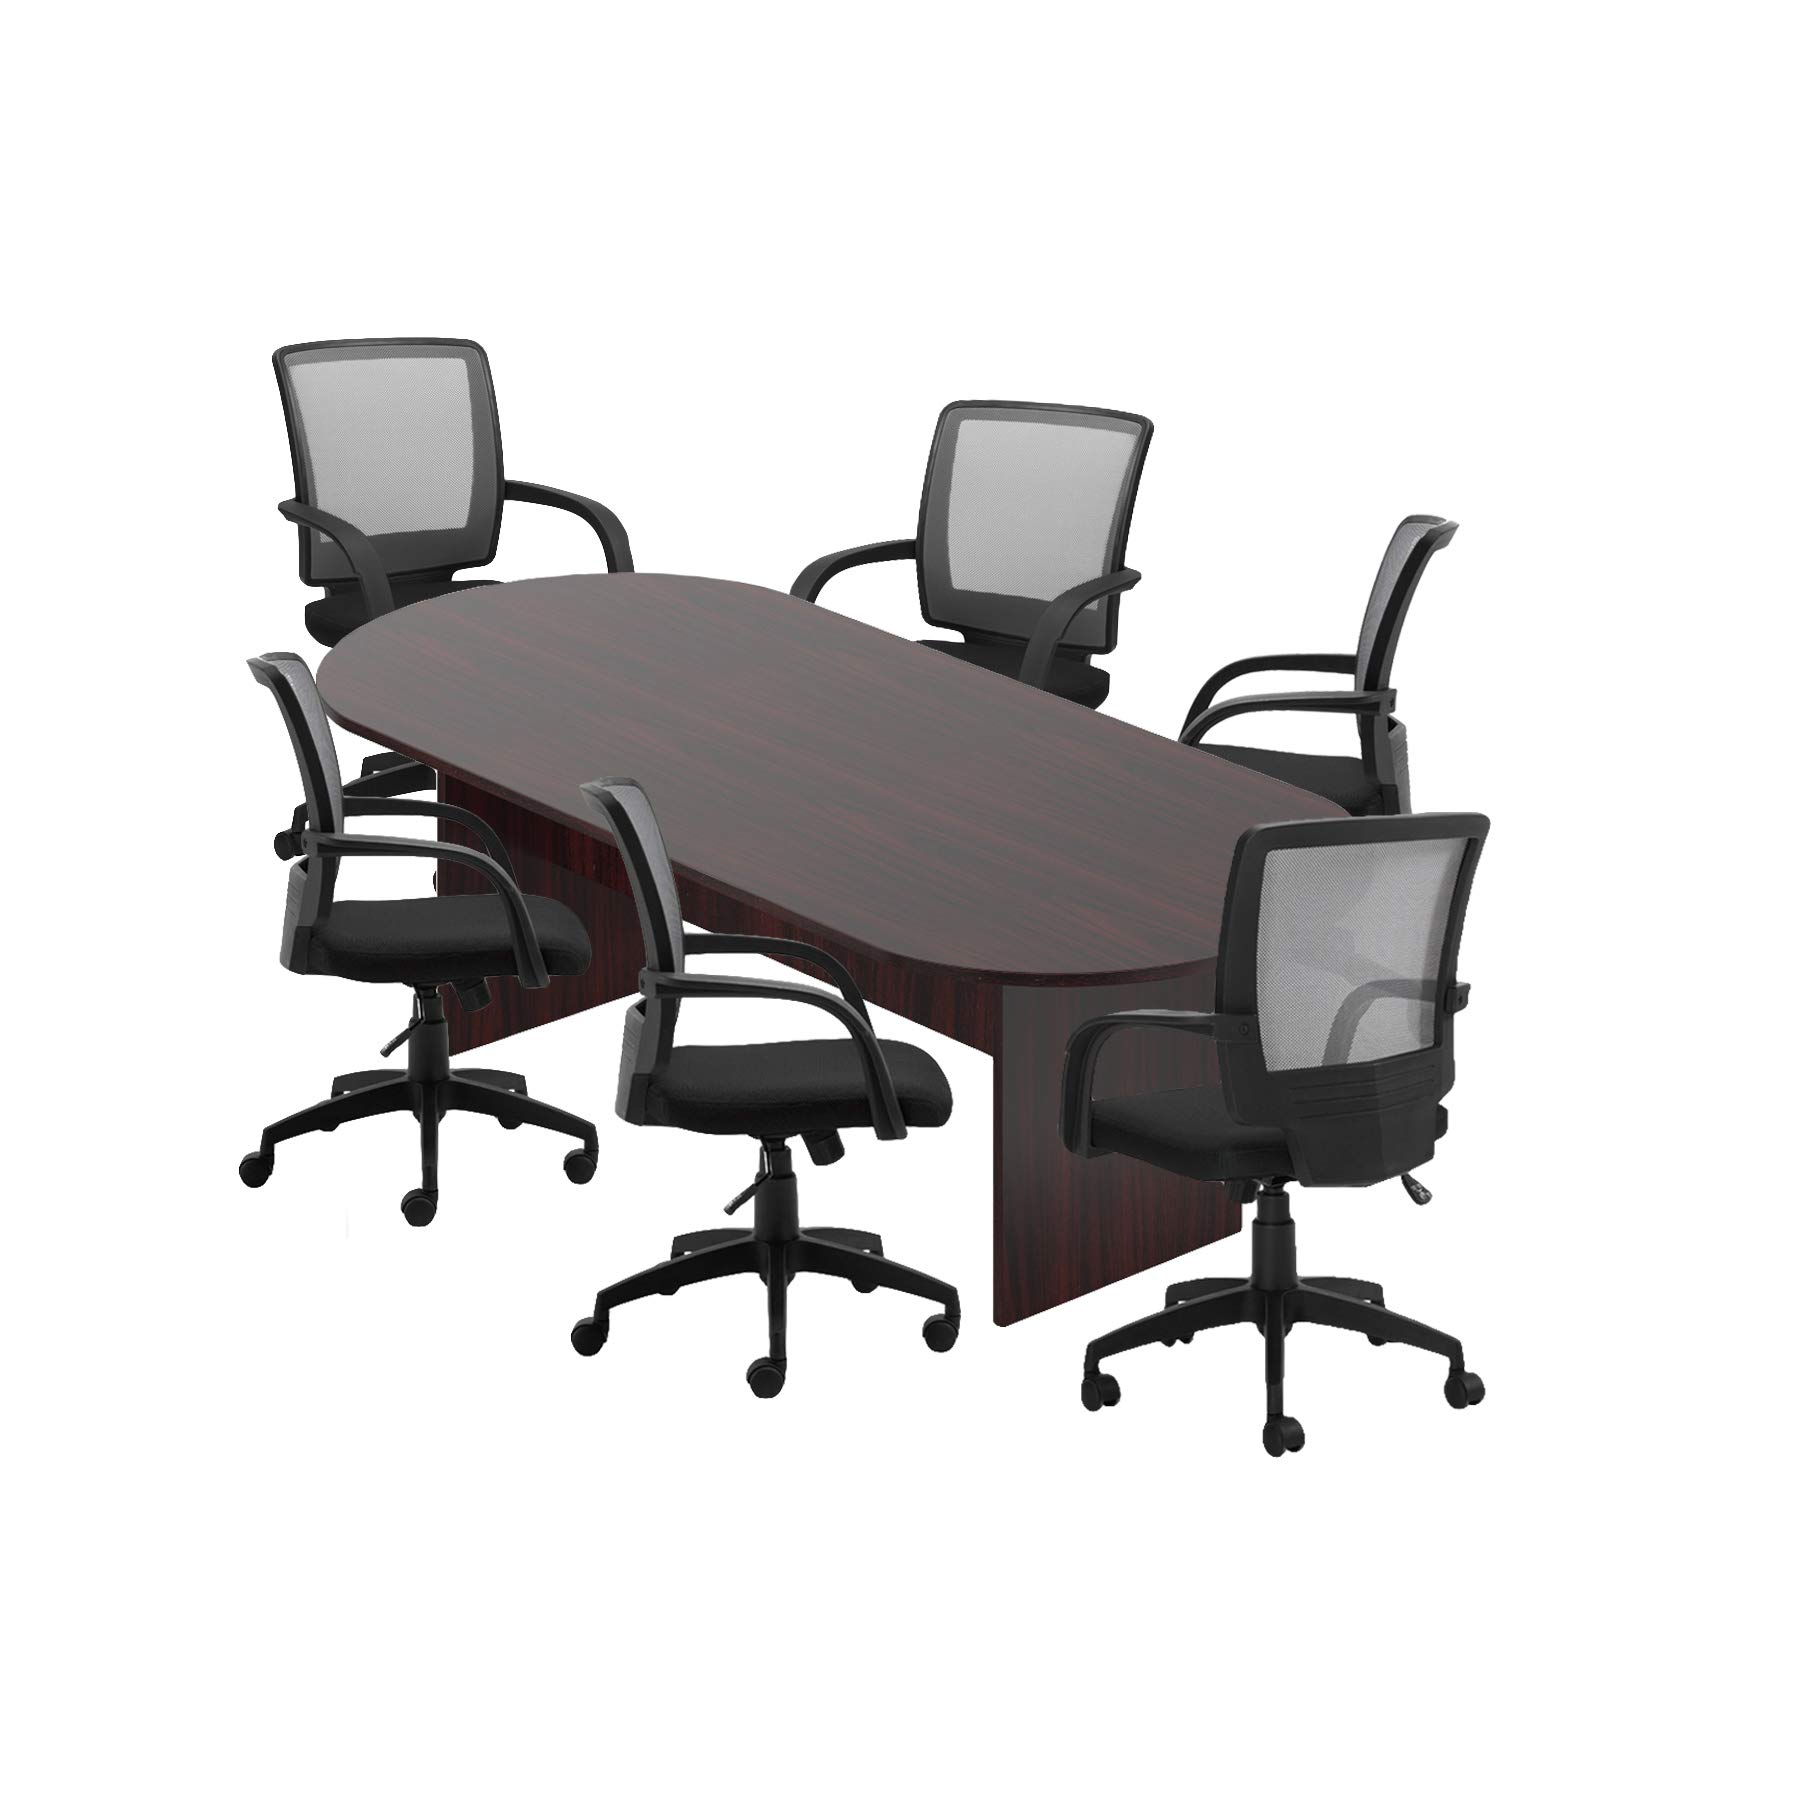 GOF 6FT, 8FT, 10FT Conference Table Chair Set, Cherry, Espresso, Mahogany, Walnut (8FT with 6 Chairs, Mahogany) by GOF (Image #1)